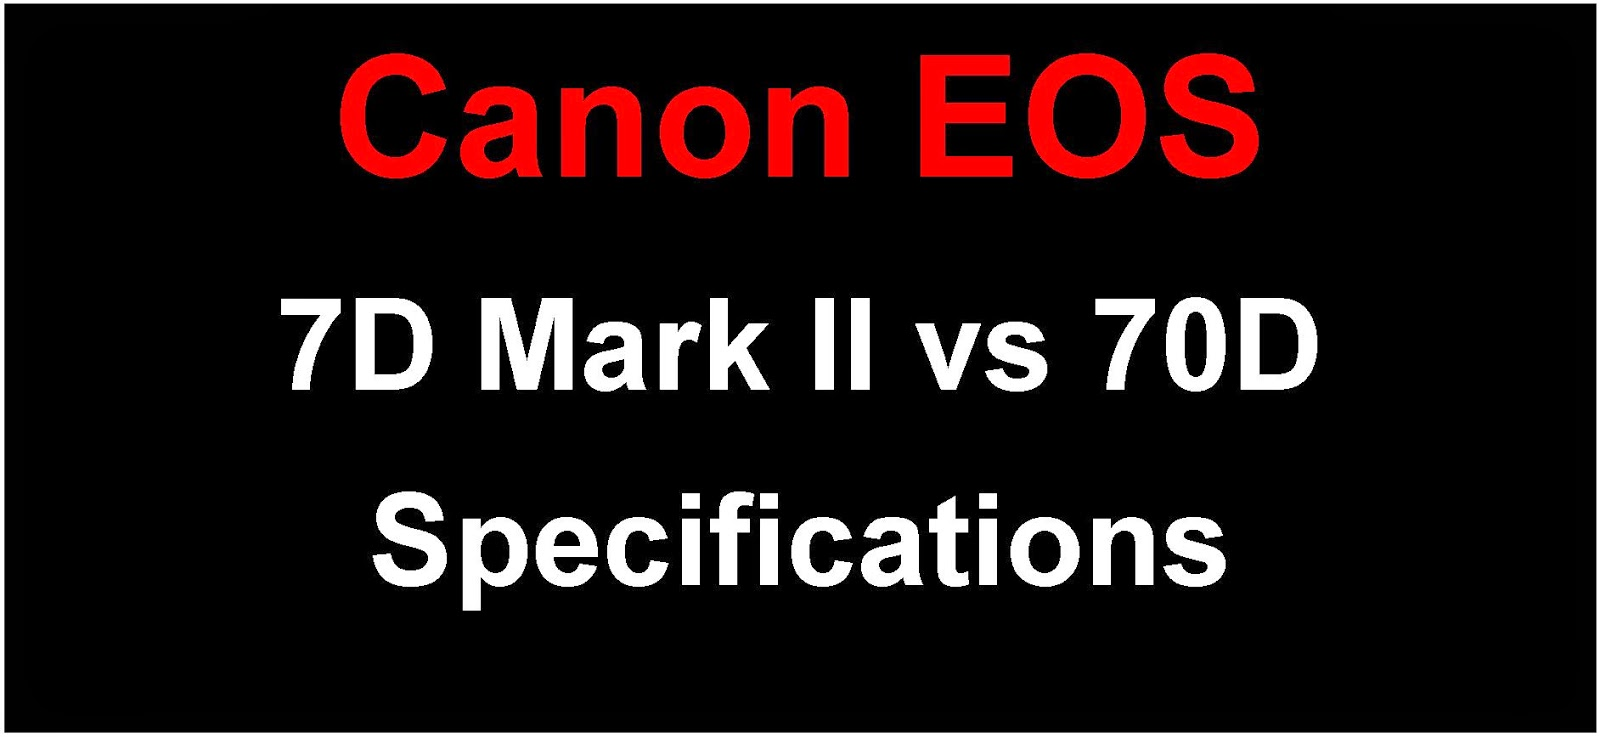 Canon EOS 7D Mark II vs EOS 70D Specification Comparison